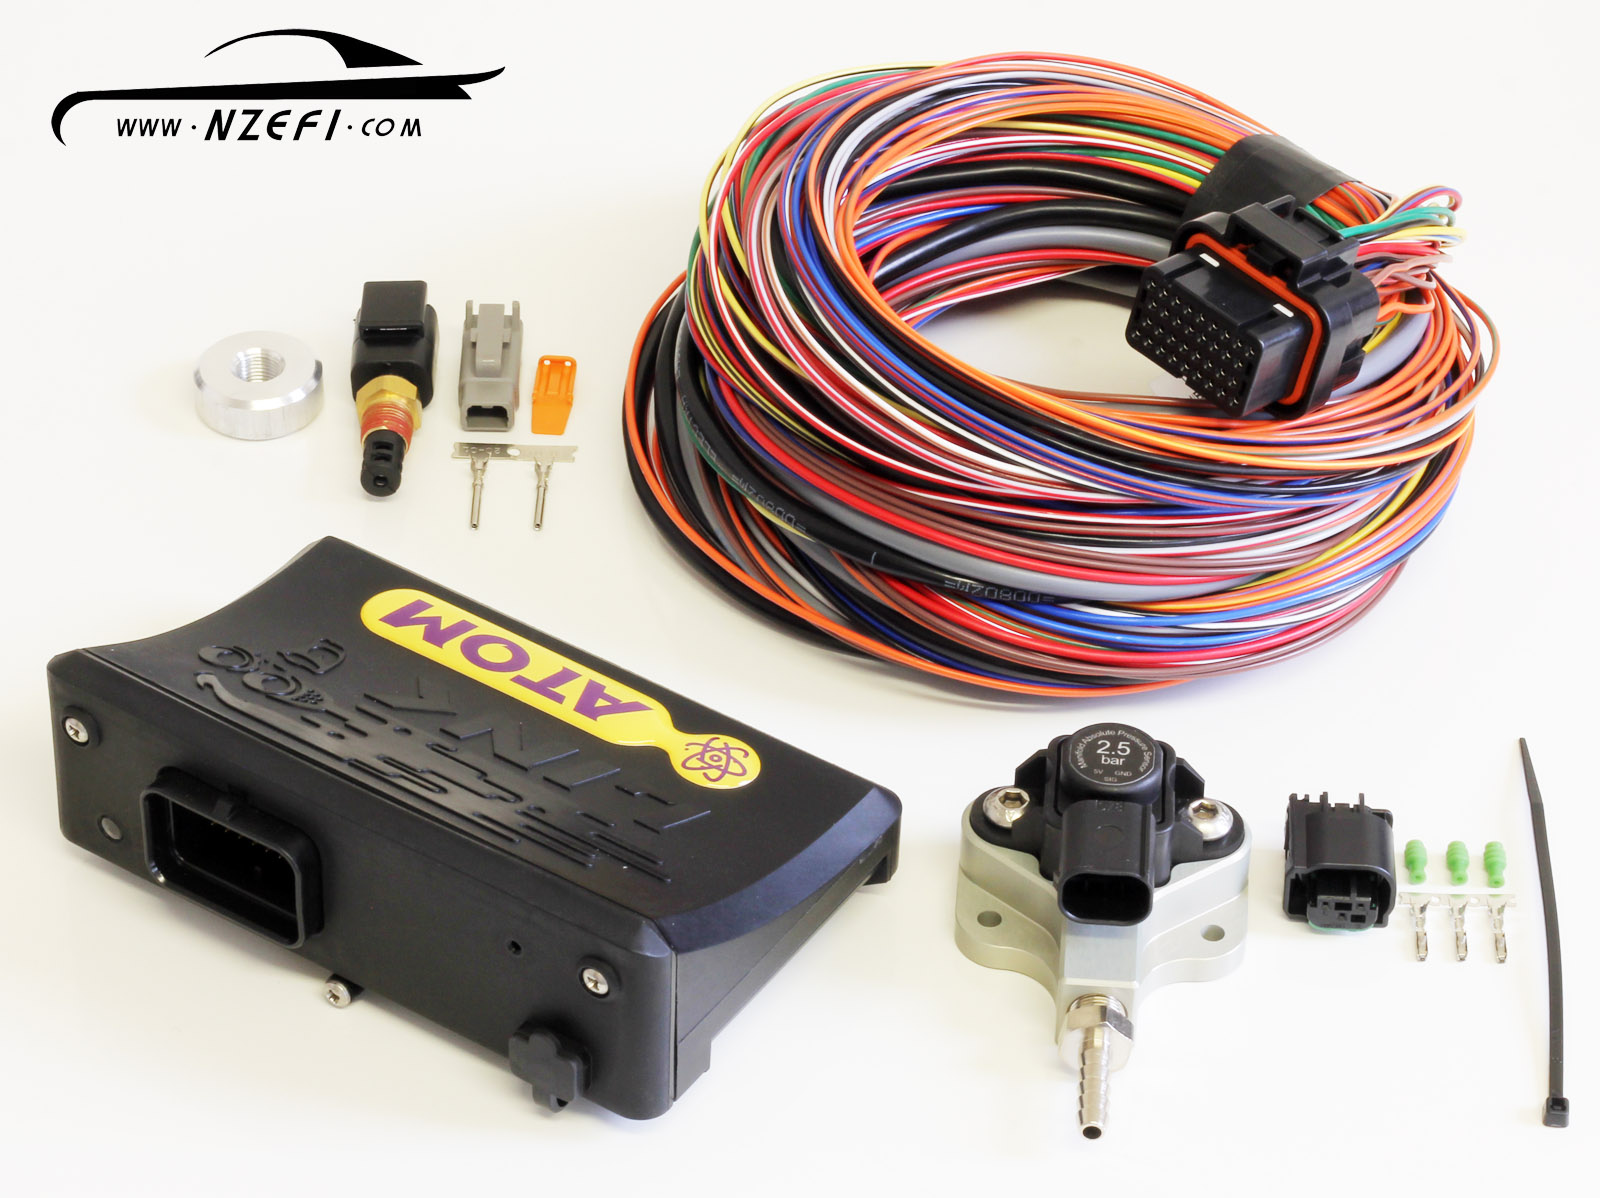 Link G4 Atom Ii Essentials Package Nzefi Wiring Harness Kit For 5 0 Efi Engine 2 25 Bar Map Sensor M Loom